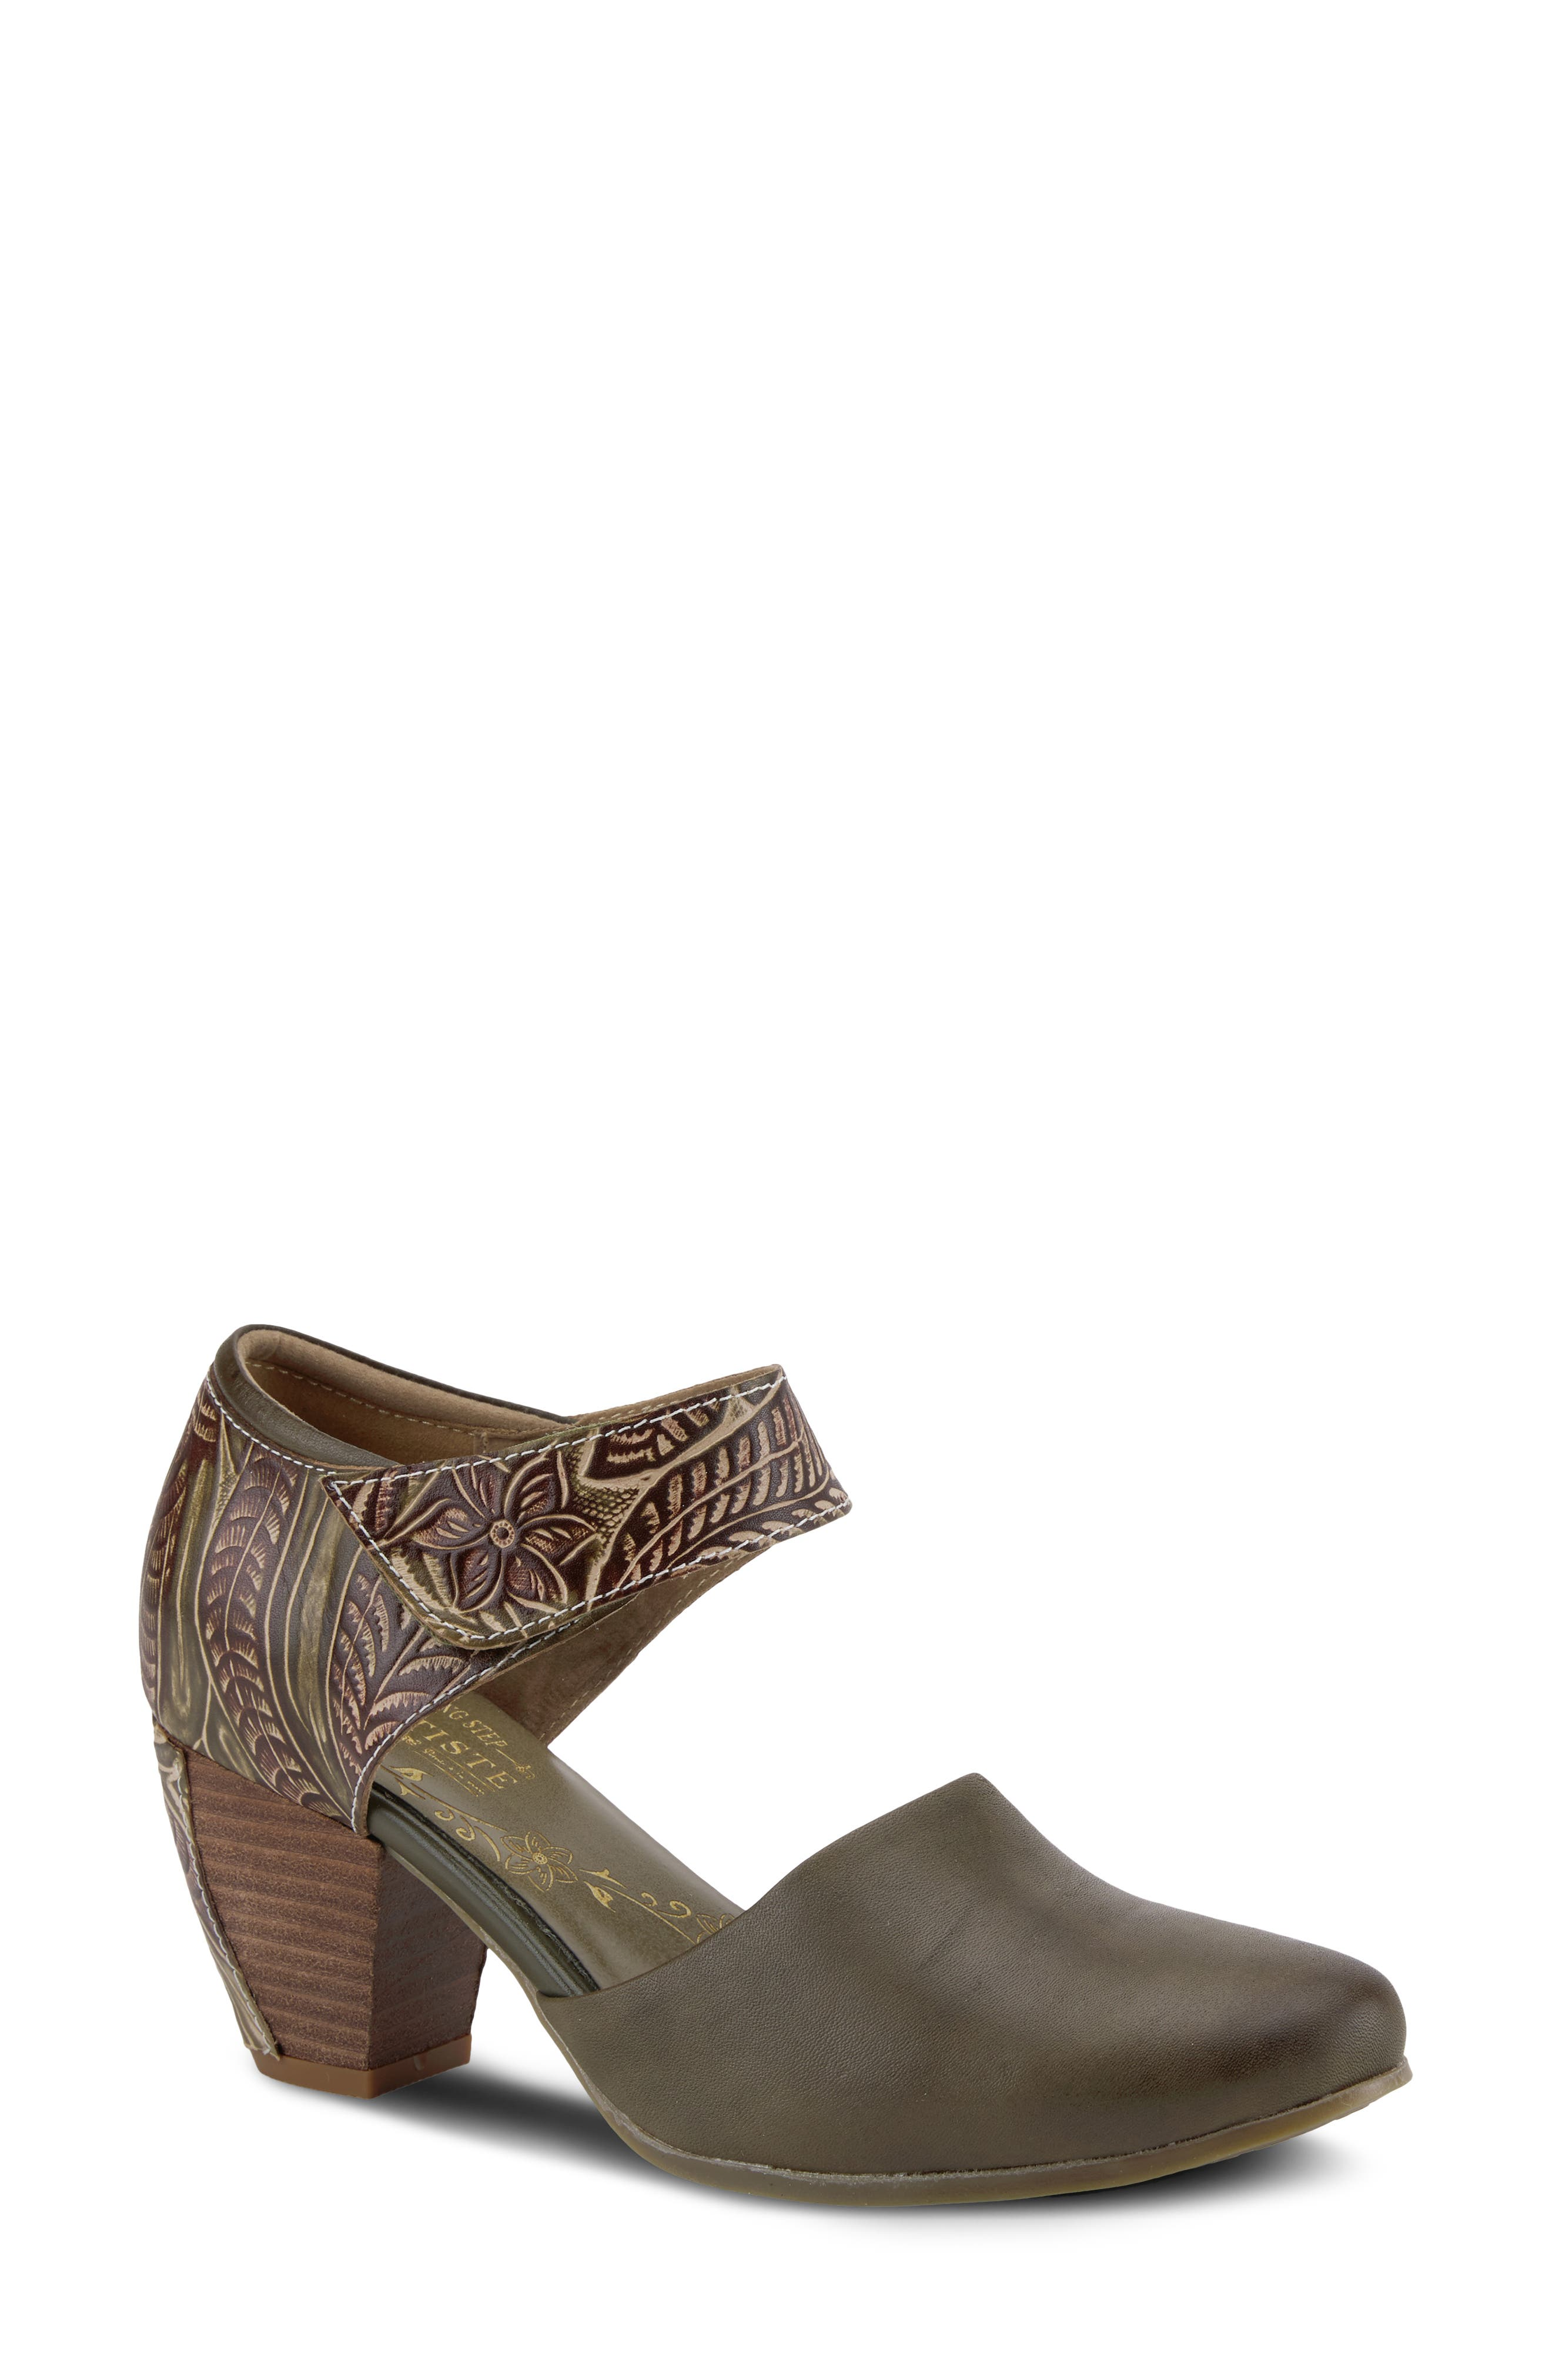 Hand-painted and hand-tooled leather distinguishes a pretty mary jane pump made with a comfortably cushioned footbed and flexible sole. Style Name:L\\\'Artiste Toolie Mary Jane Pump (Women). Style Number: 6117374. Available in stores.